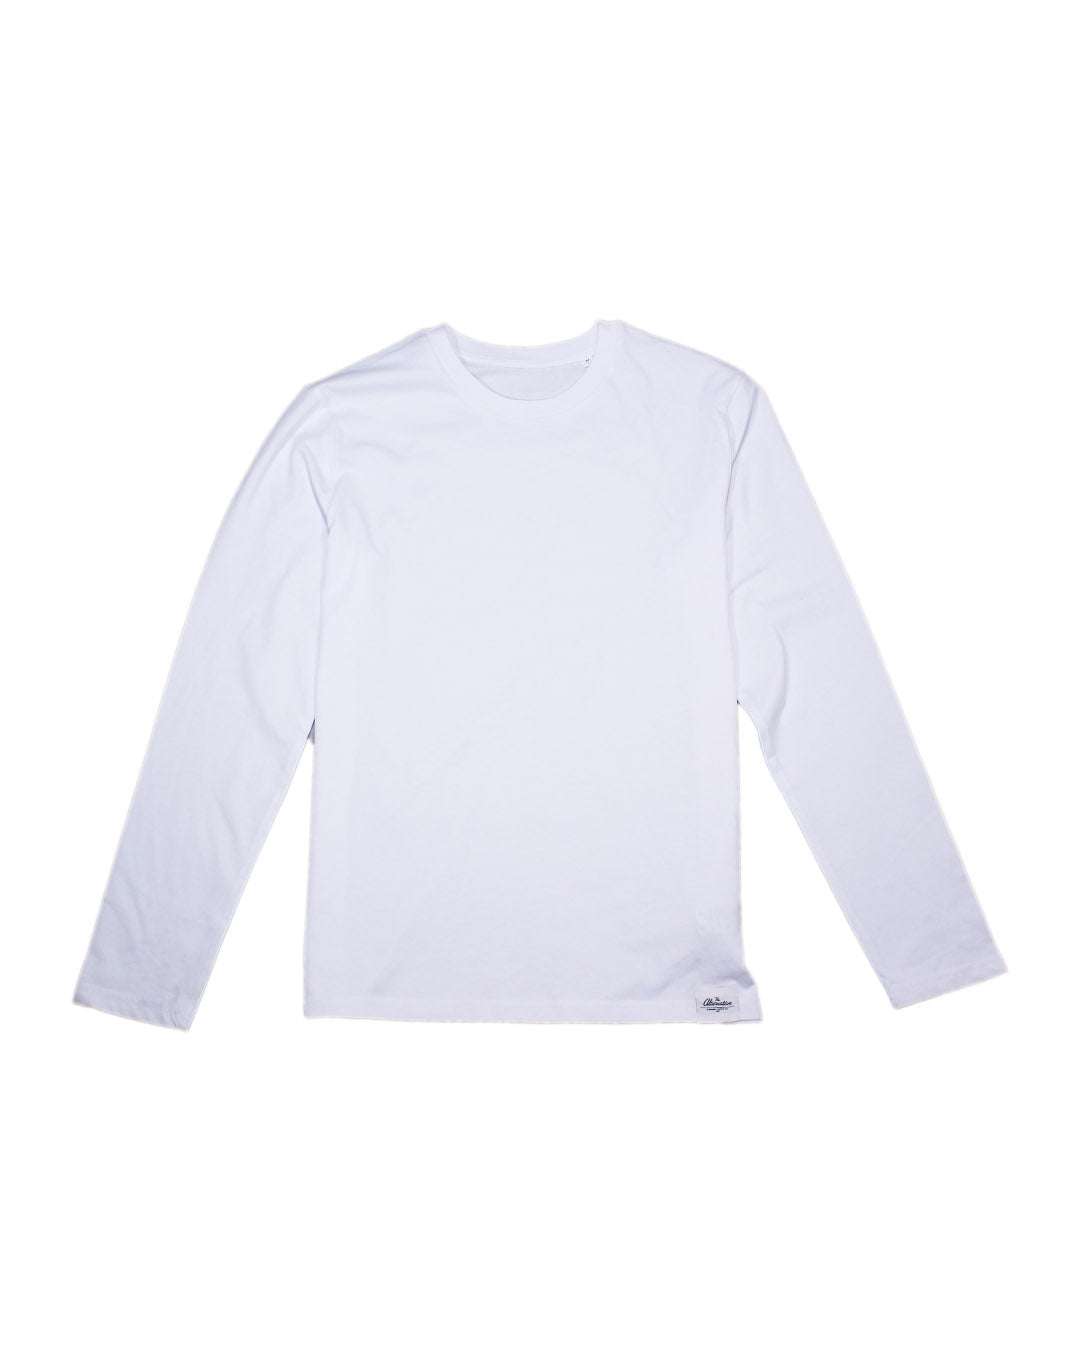 The Alternative - White Long Sleeve T-Shirt